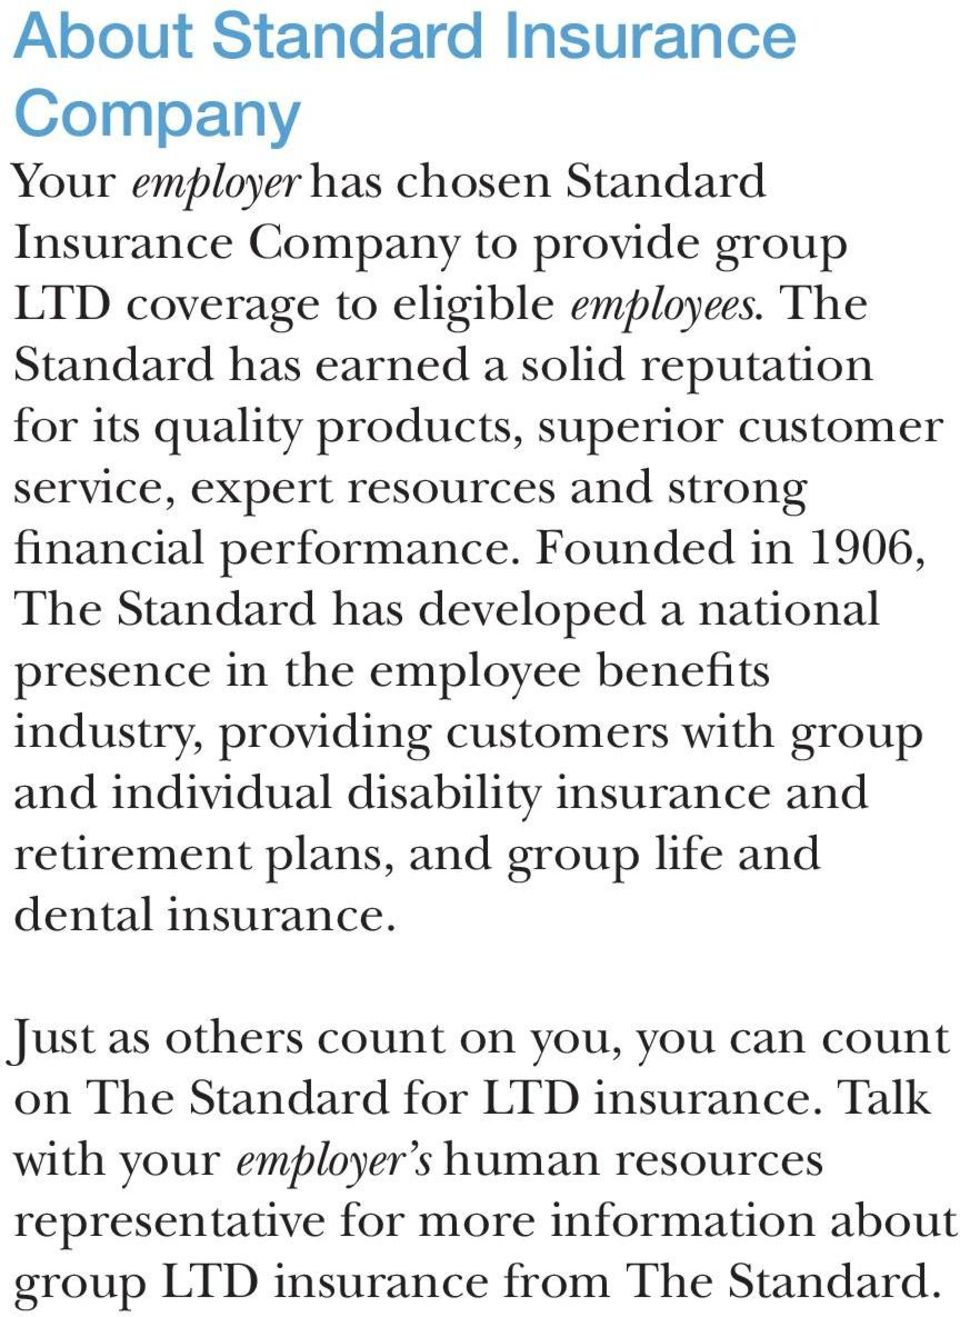 Founded in 1906, The Standard has developed a national presence in the employee benefits industry, providing customers with group and individual disability insurance and